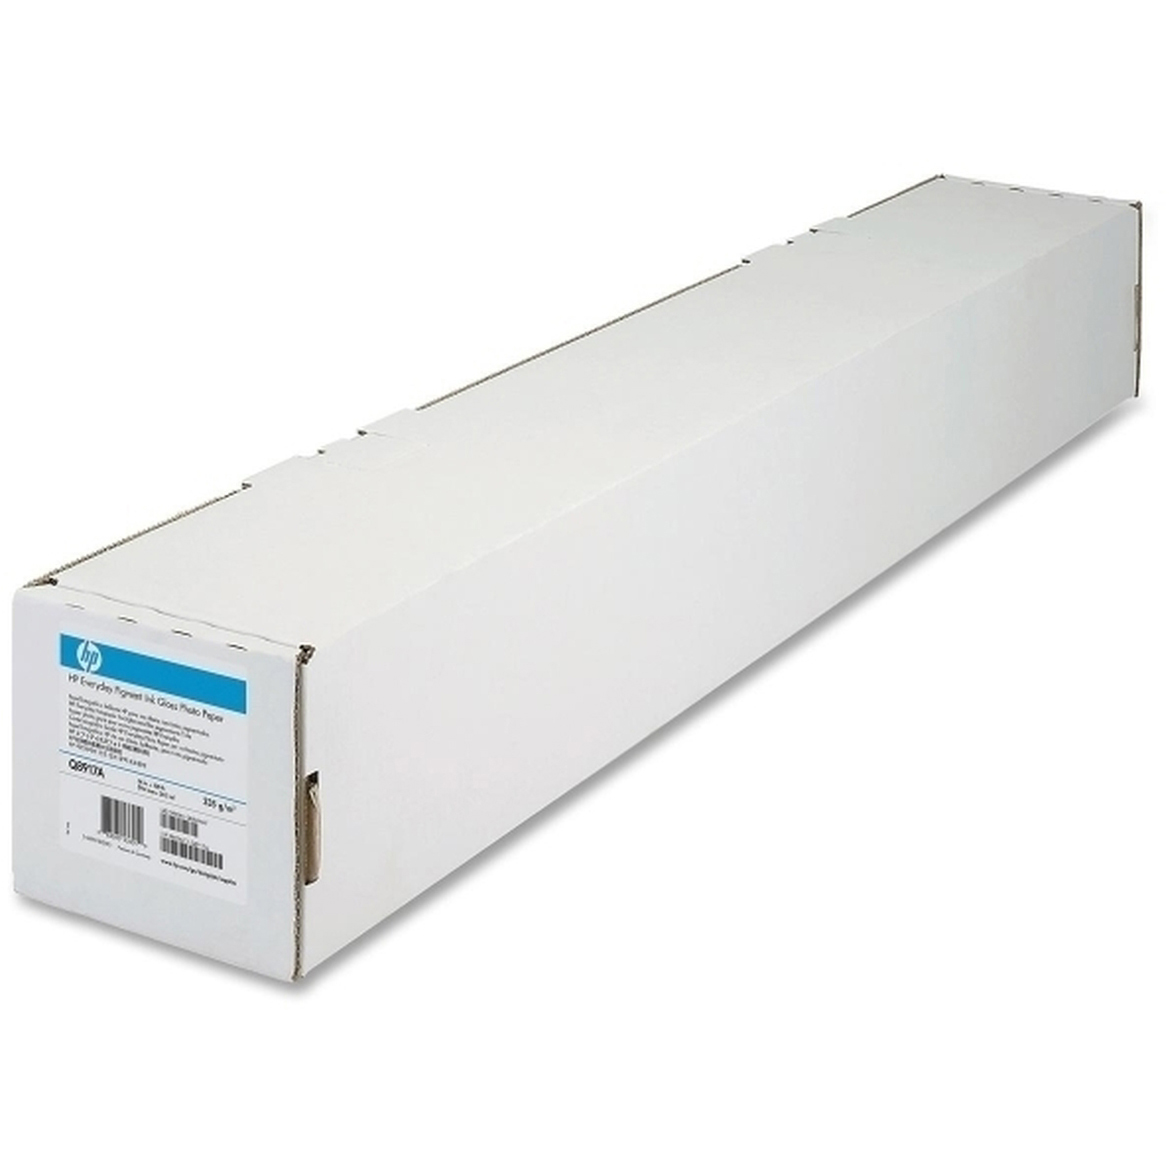 Original HP 172gsm 24in x 100in Heavyweight Coated Paper Roll (Q1412B)